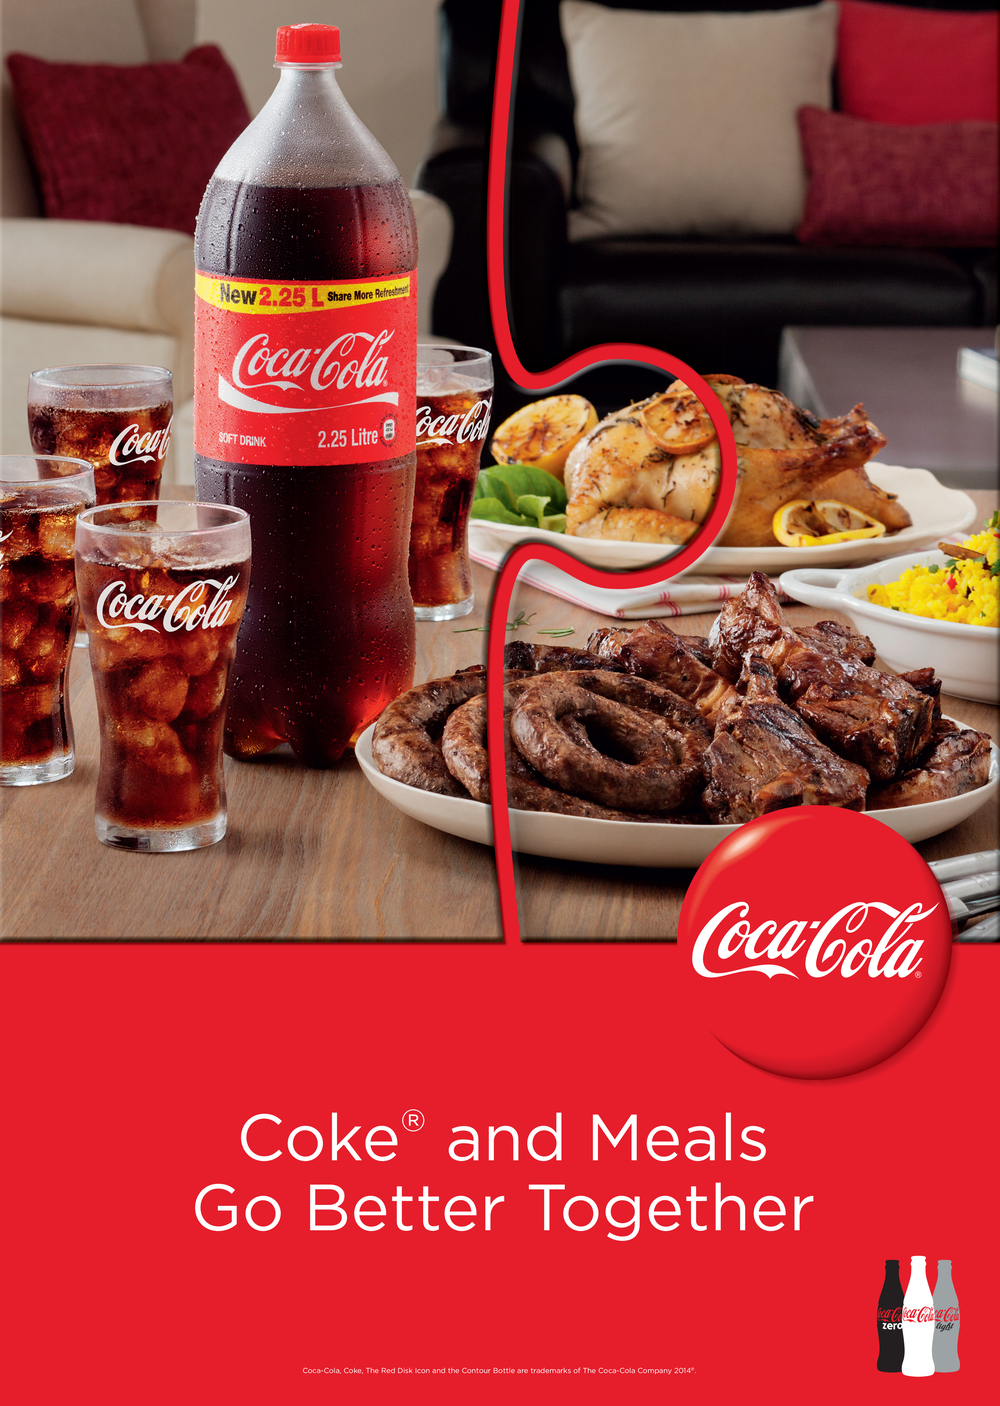 Coke & Meals - Butchery2small.jpg